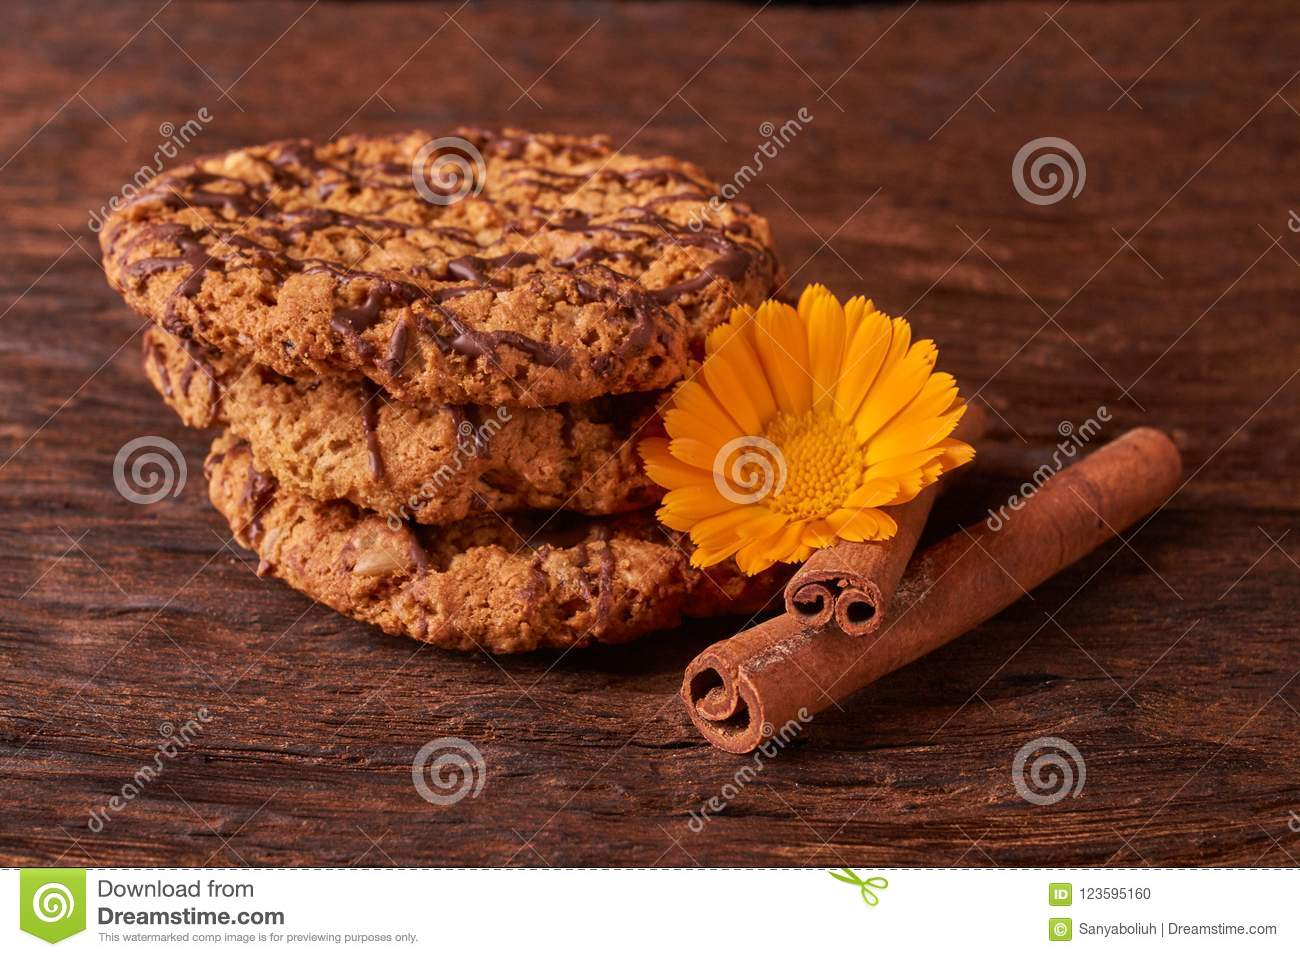 Watered Chocolate Syrup Cookies On Wooden Table Cute Composition